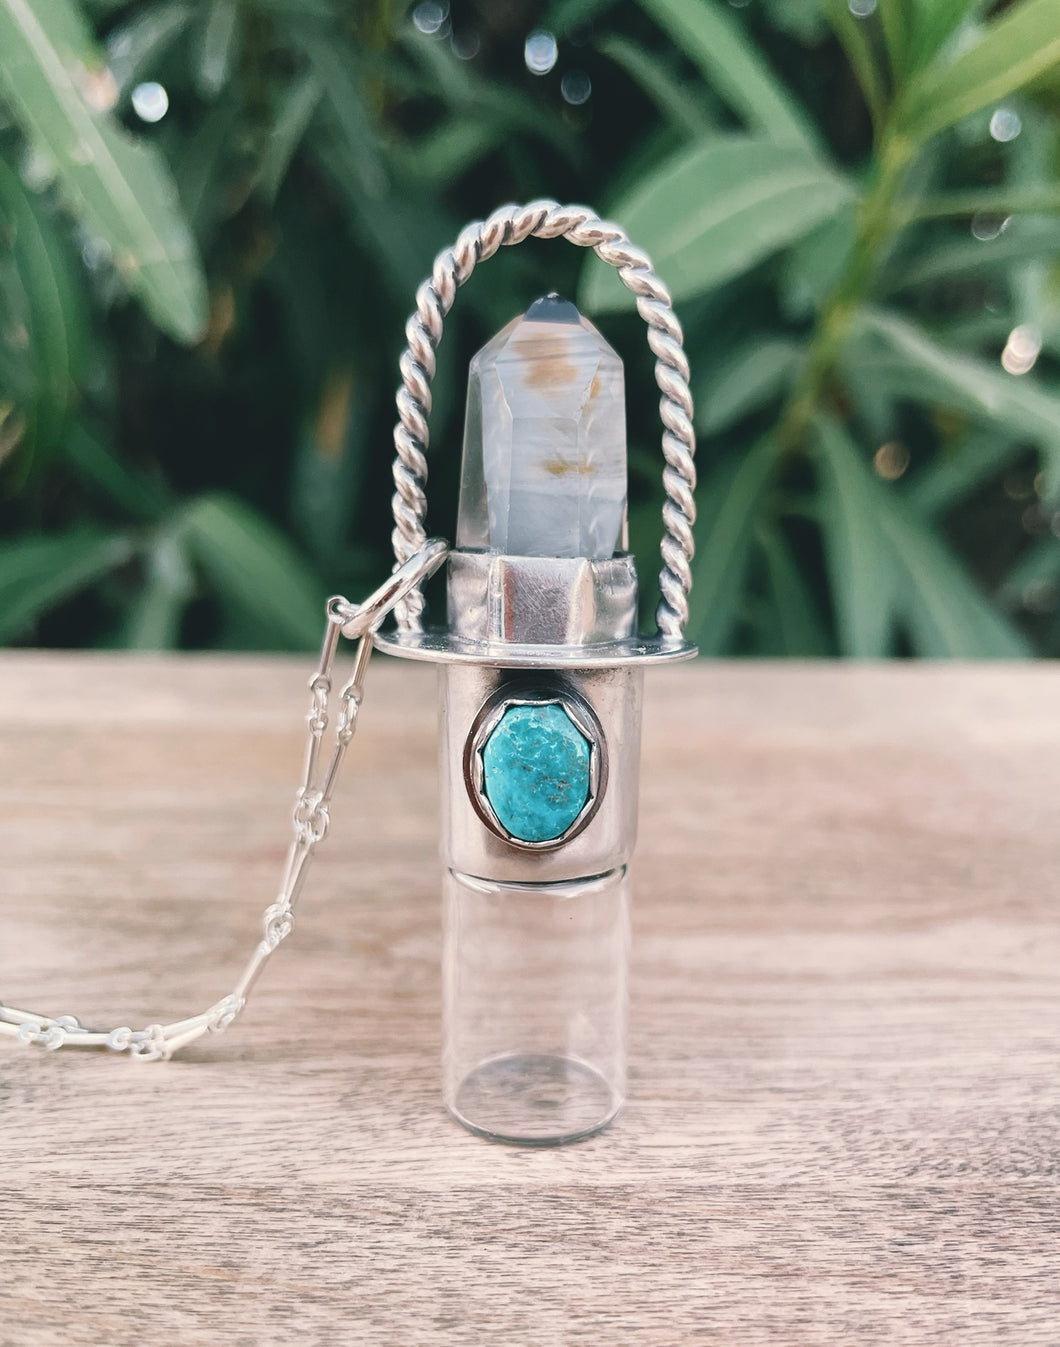 Sterling Silver Twist Classic - Amphibole Quartz + Bisbee Turquoise Rollerball Necklace